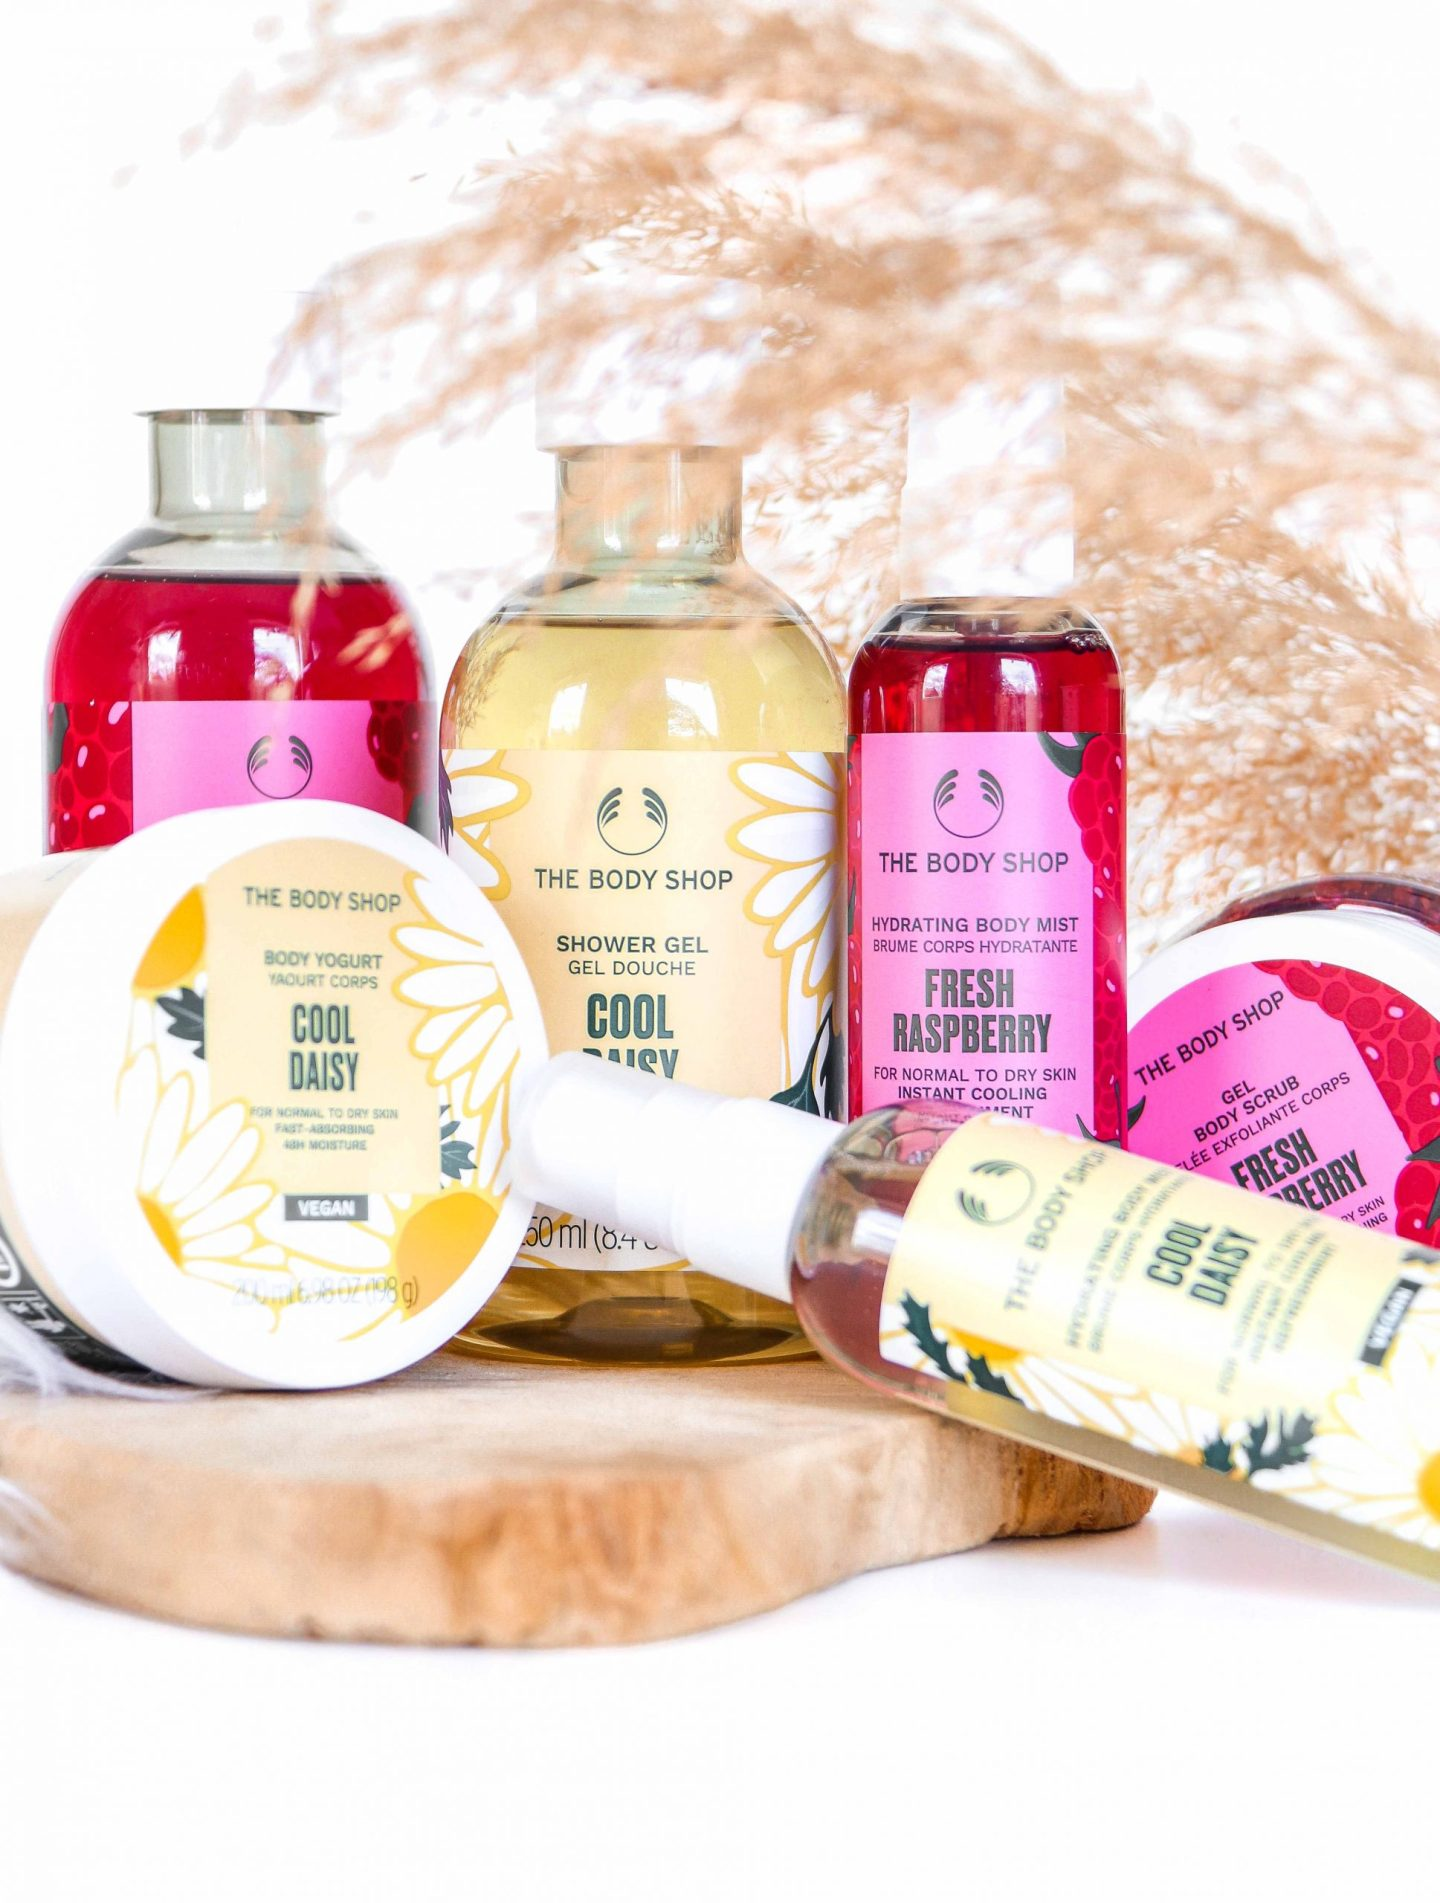 COOL DAISY & FRESH RASPBERRY SPECIAL EDITION | THE BODY SHOP